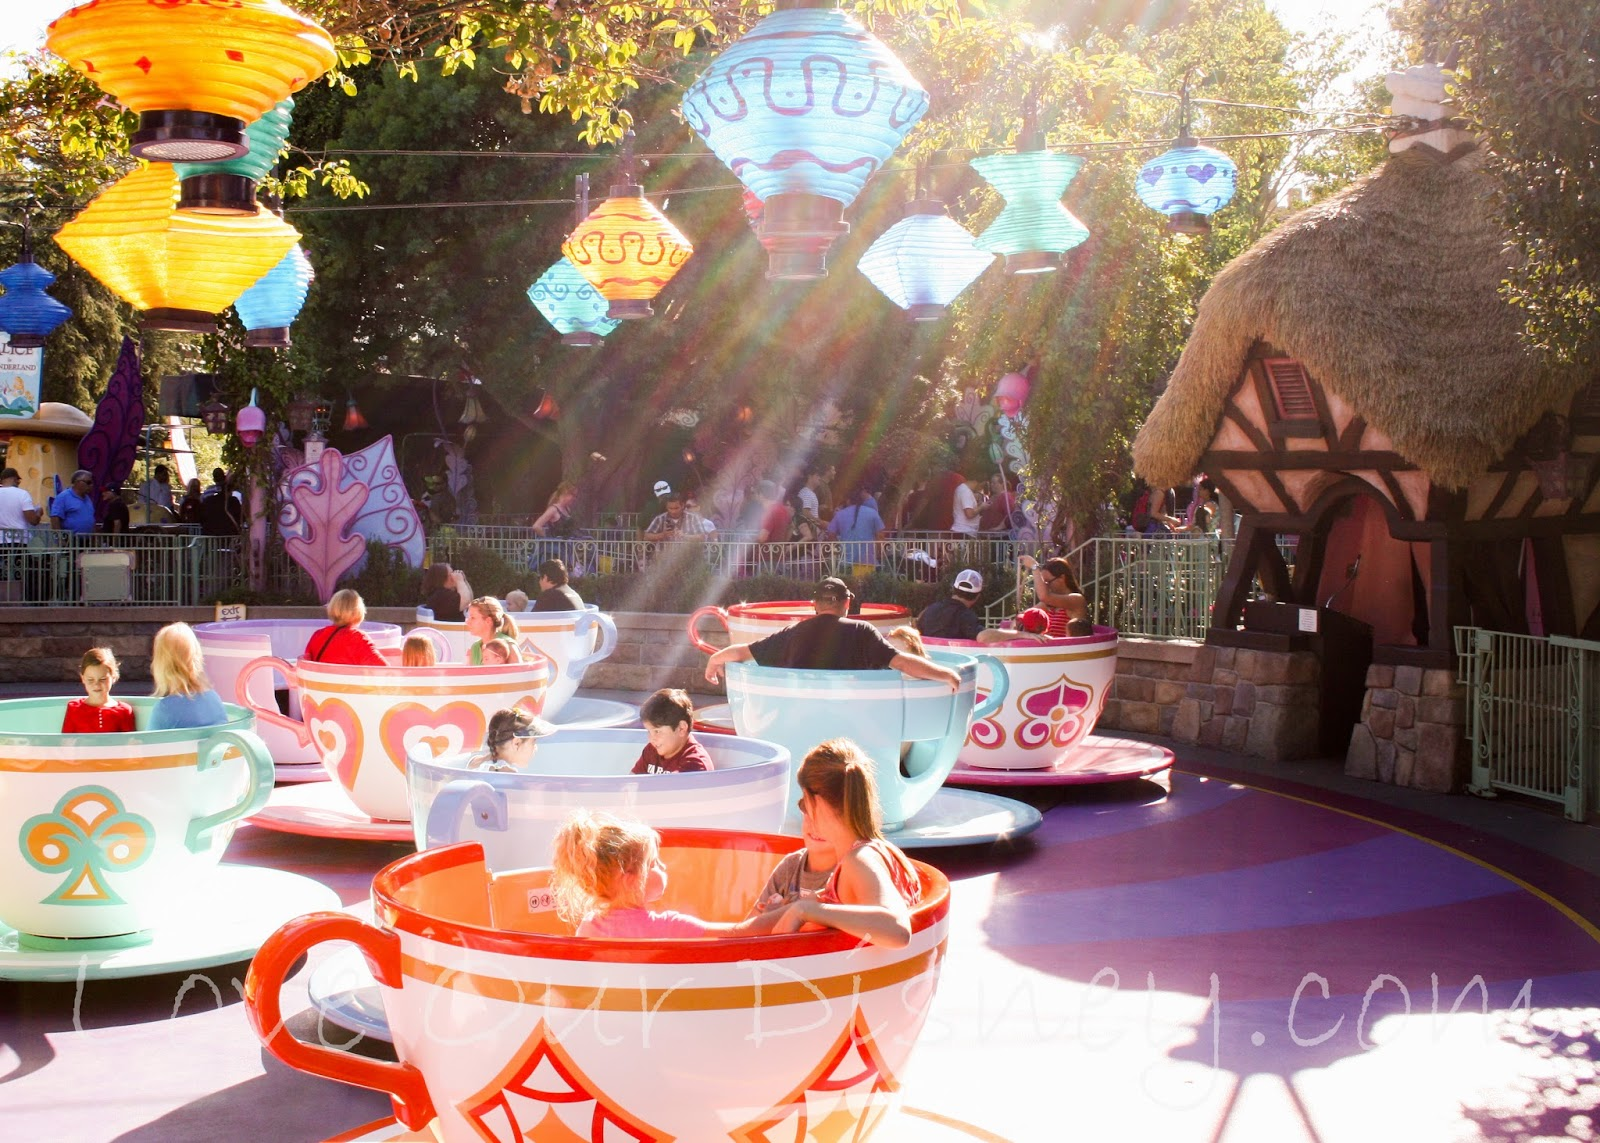 These 23 tips include things like best time to hit up Fantasyland at Disneyland. LoveOurDisney.com